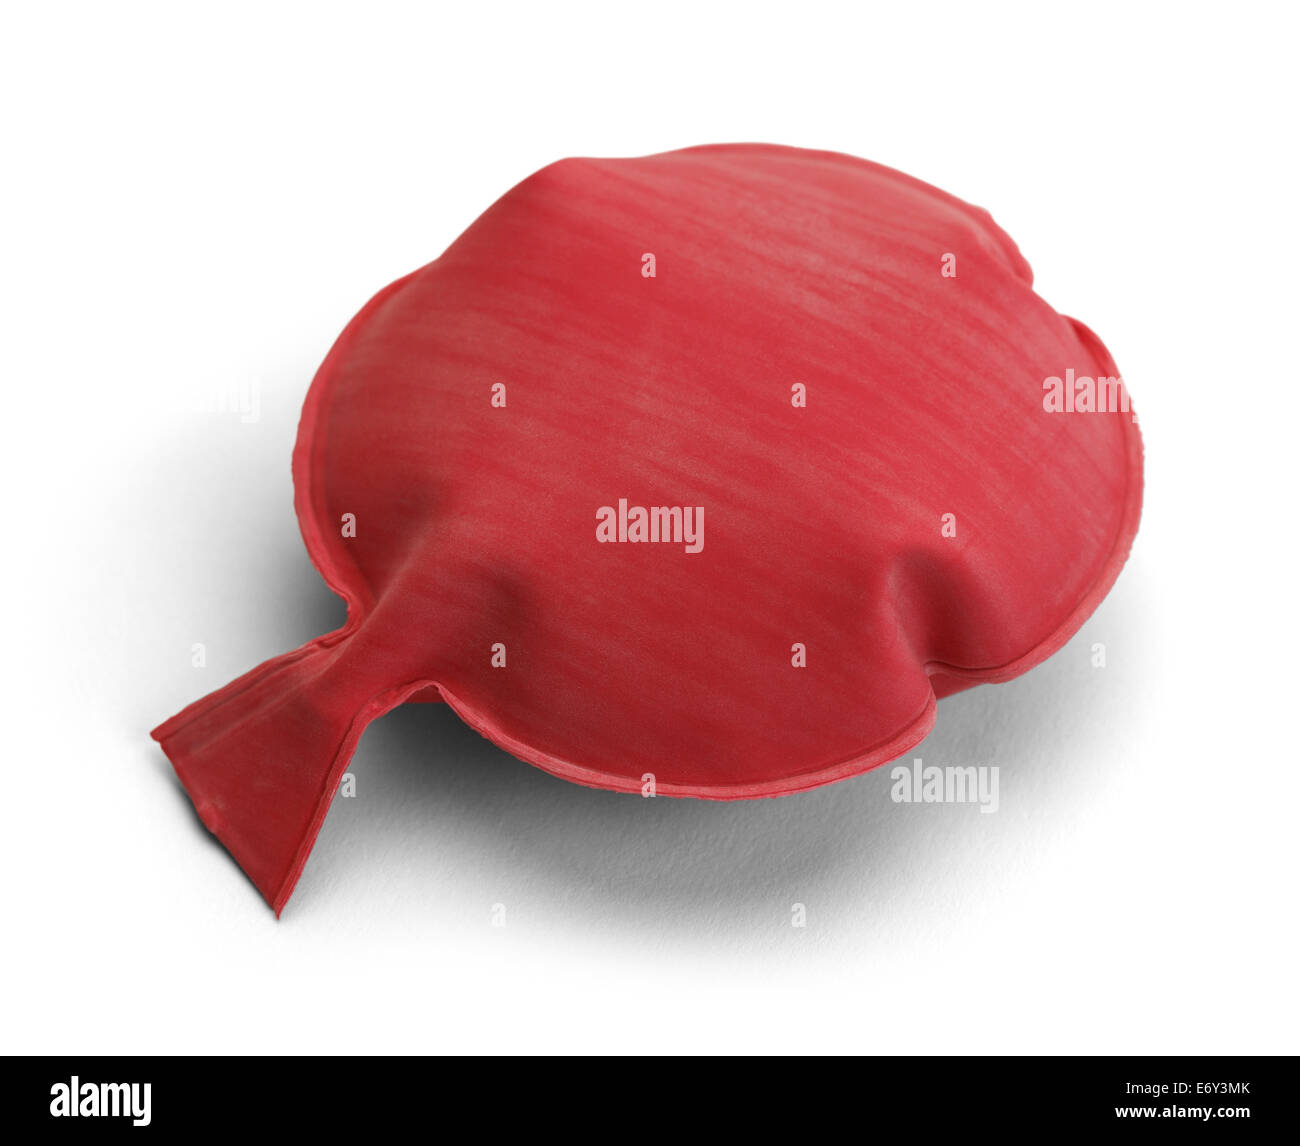 Red Rubber Noise Maker Isolated on a White Background. - Stock Image